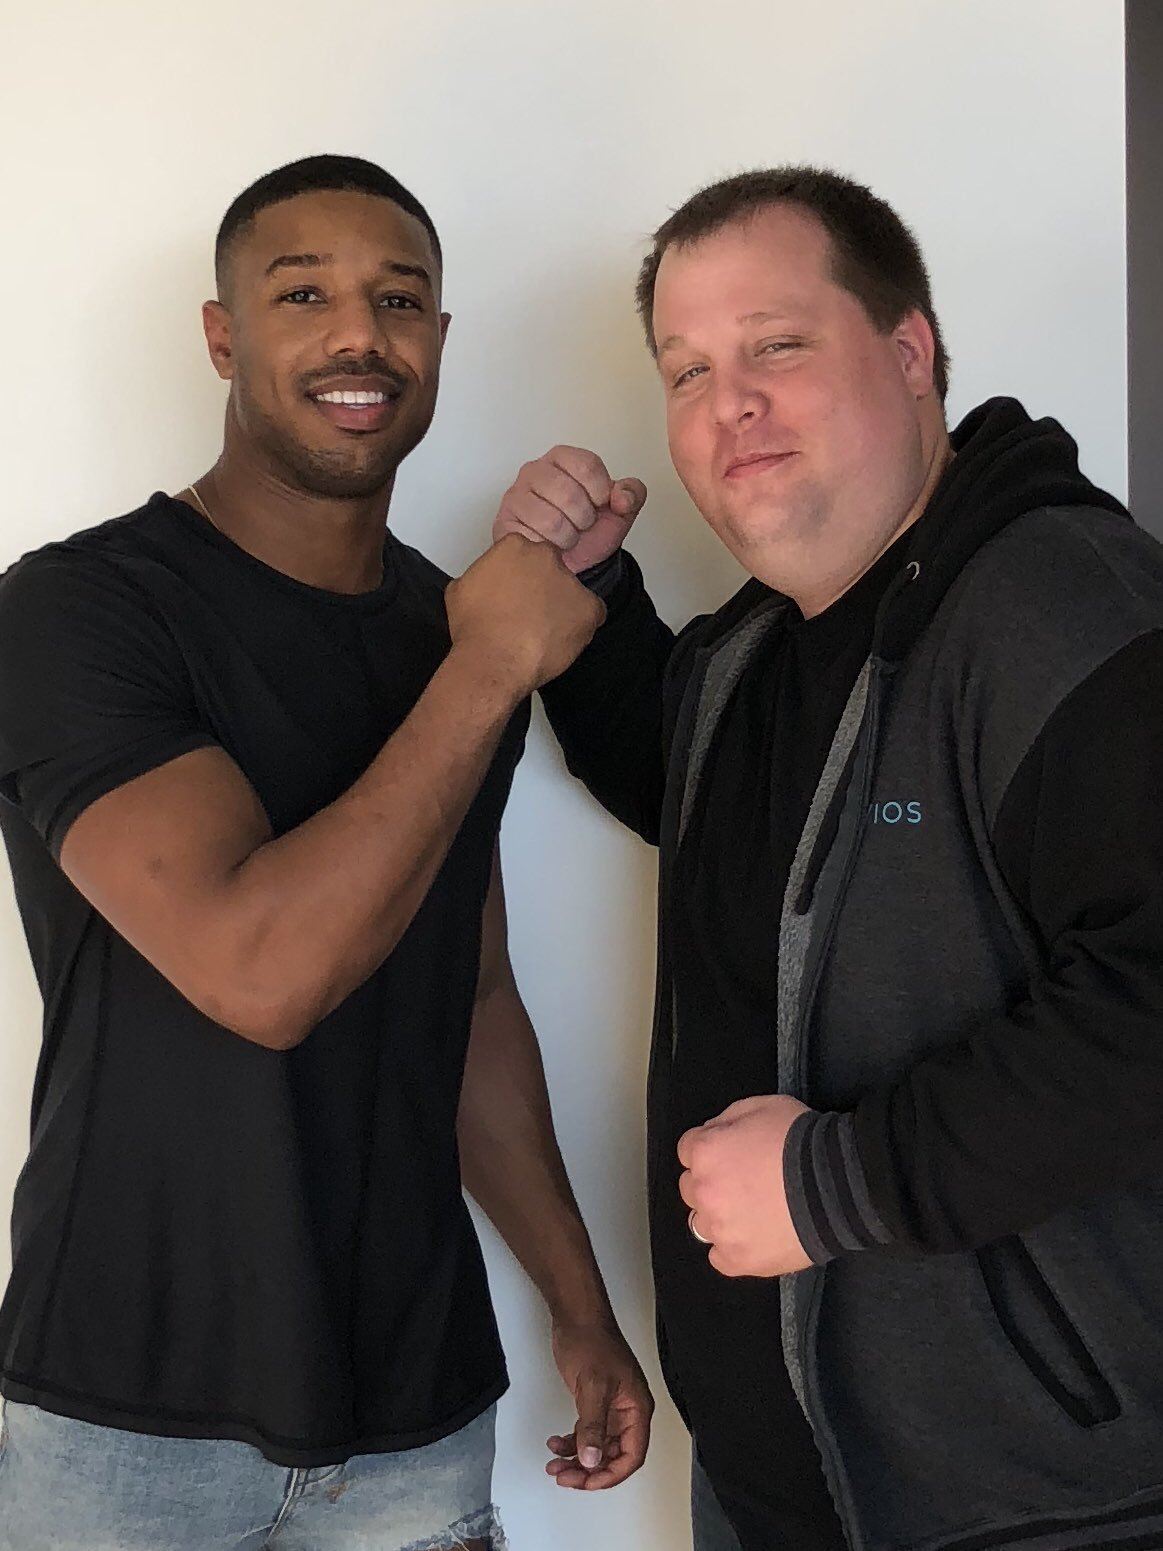 Mike McTyre with Creed actor Michael B. Jordan (Image: Twitter)